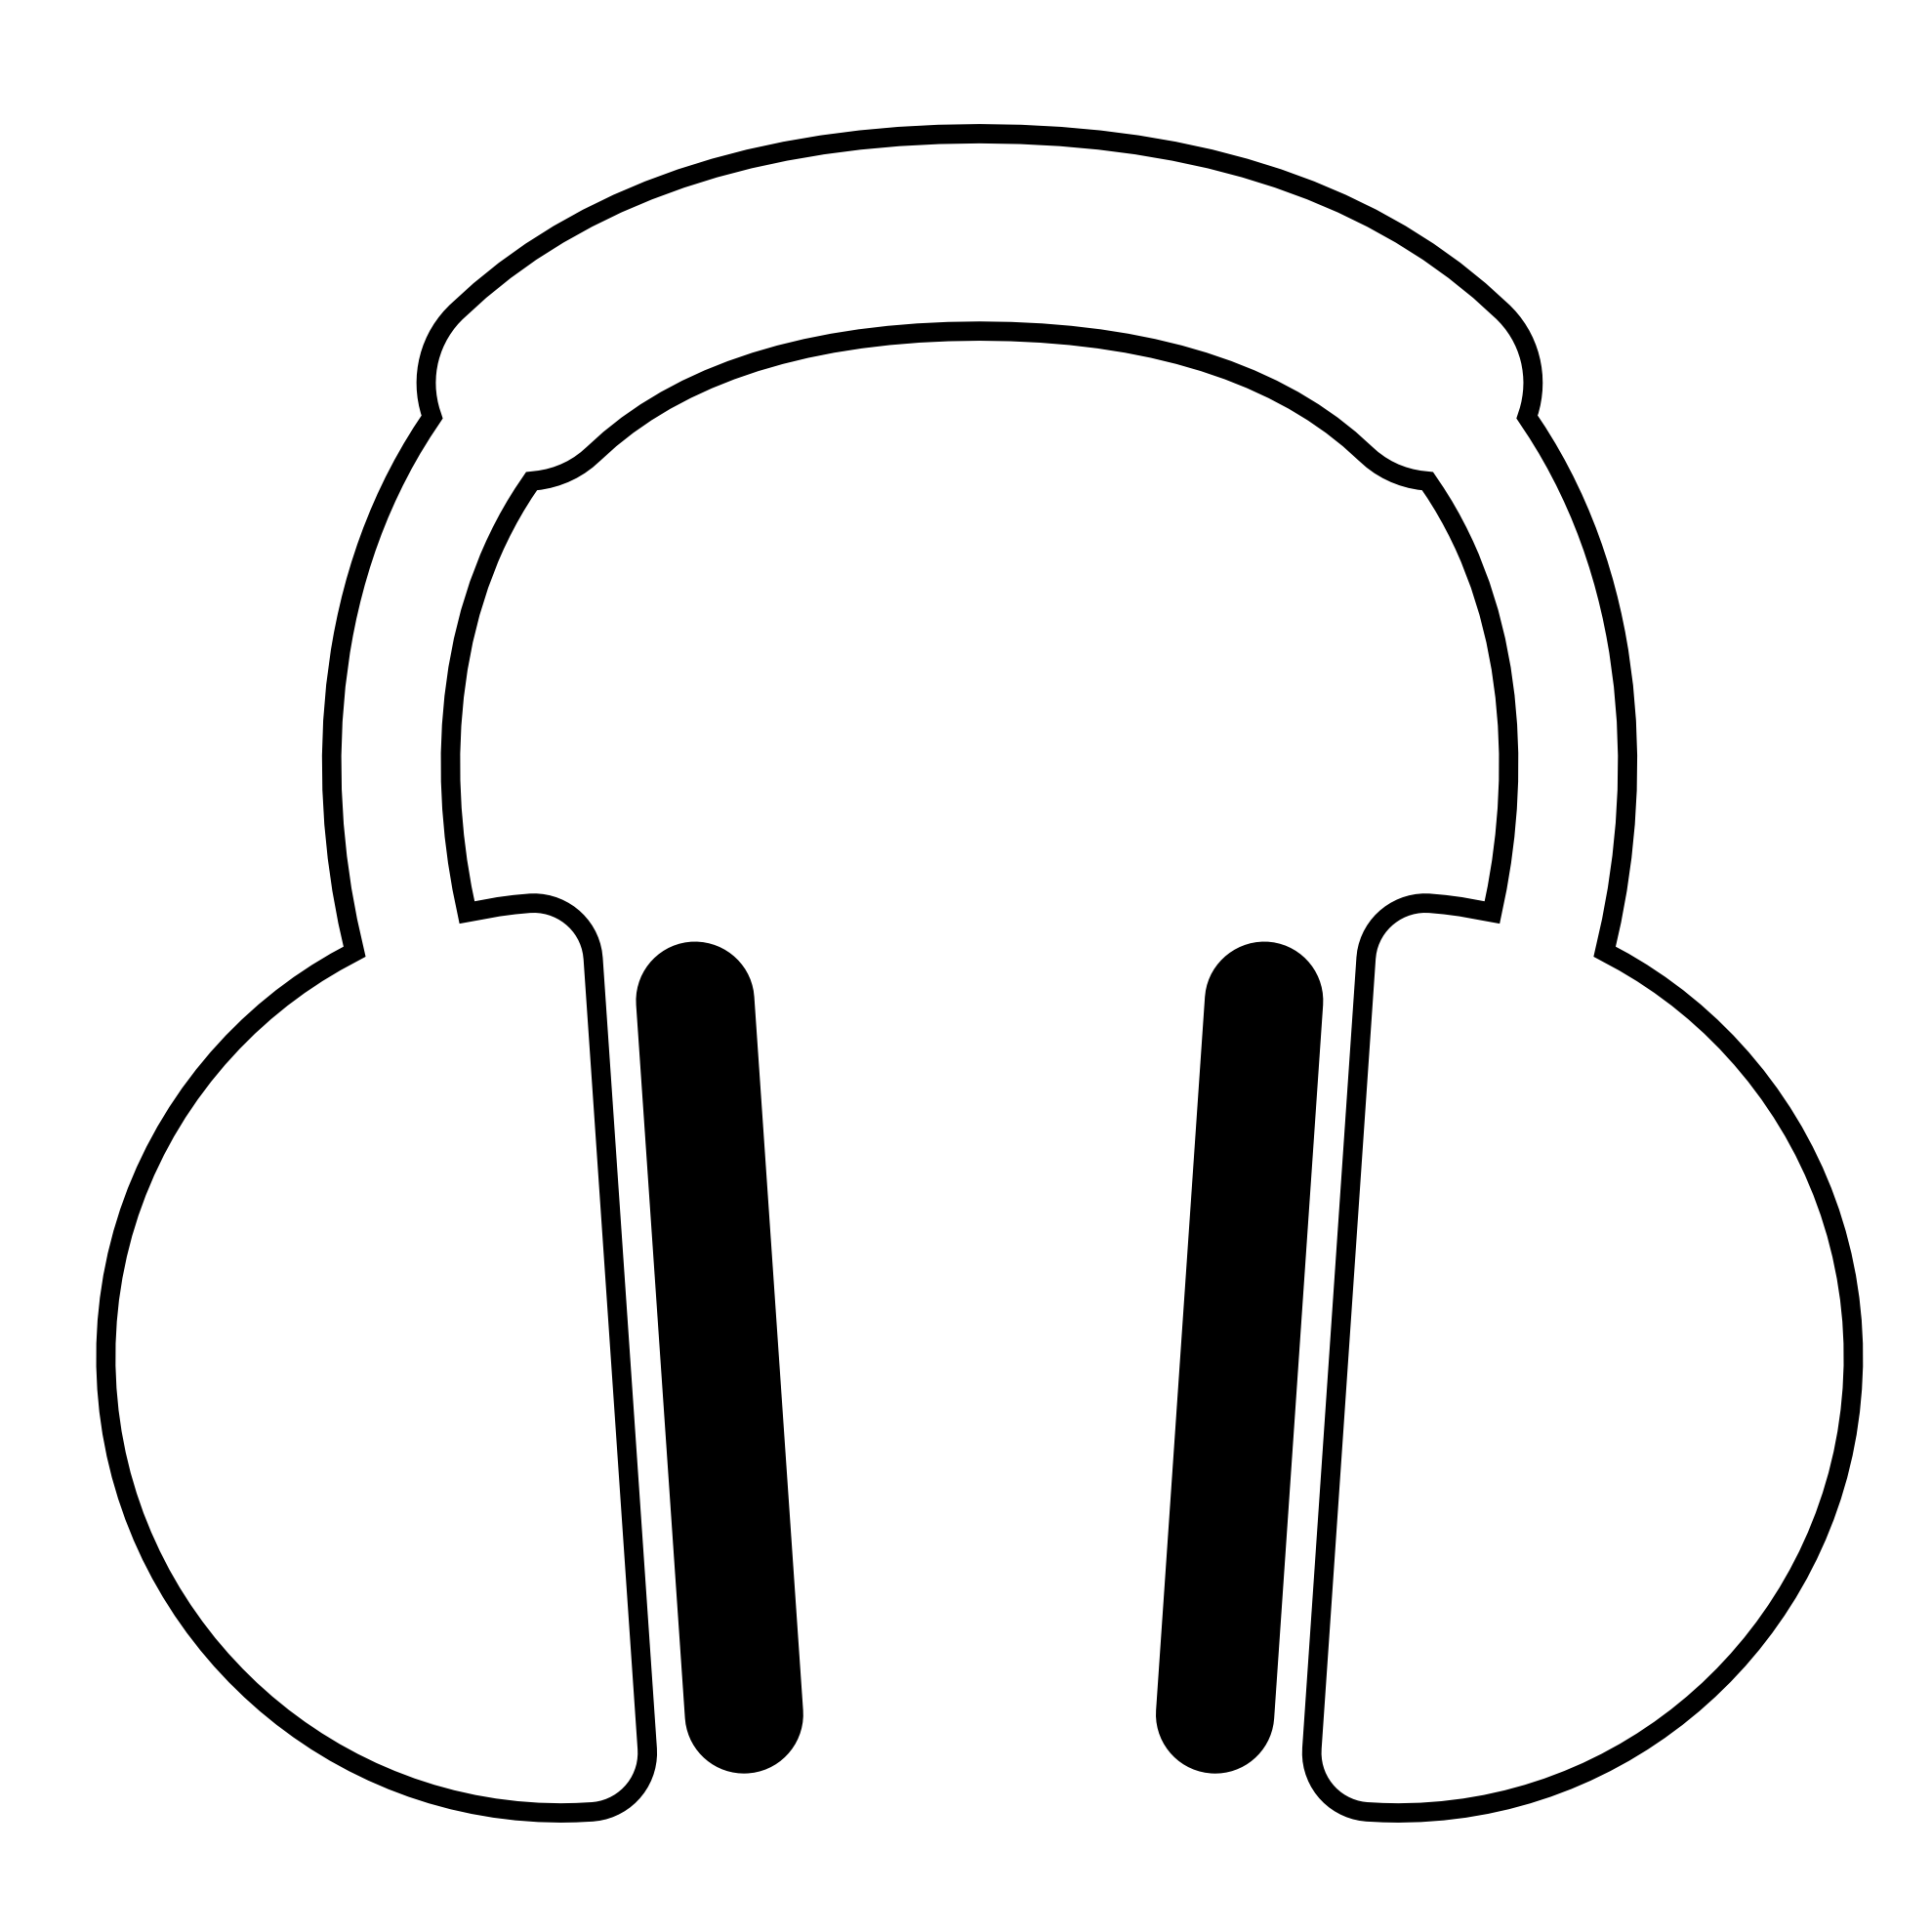 Free Listen Music Cliparts, Download Free Clip Art, Free.